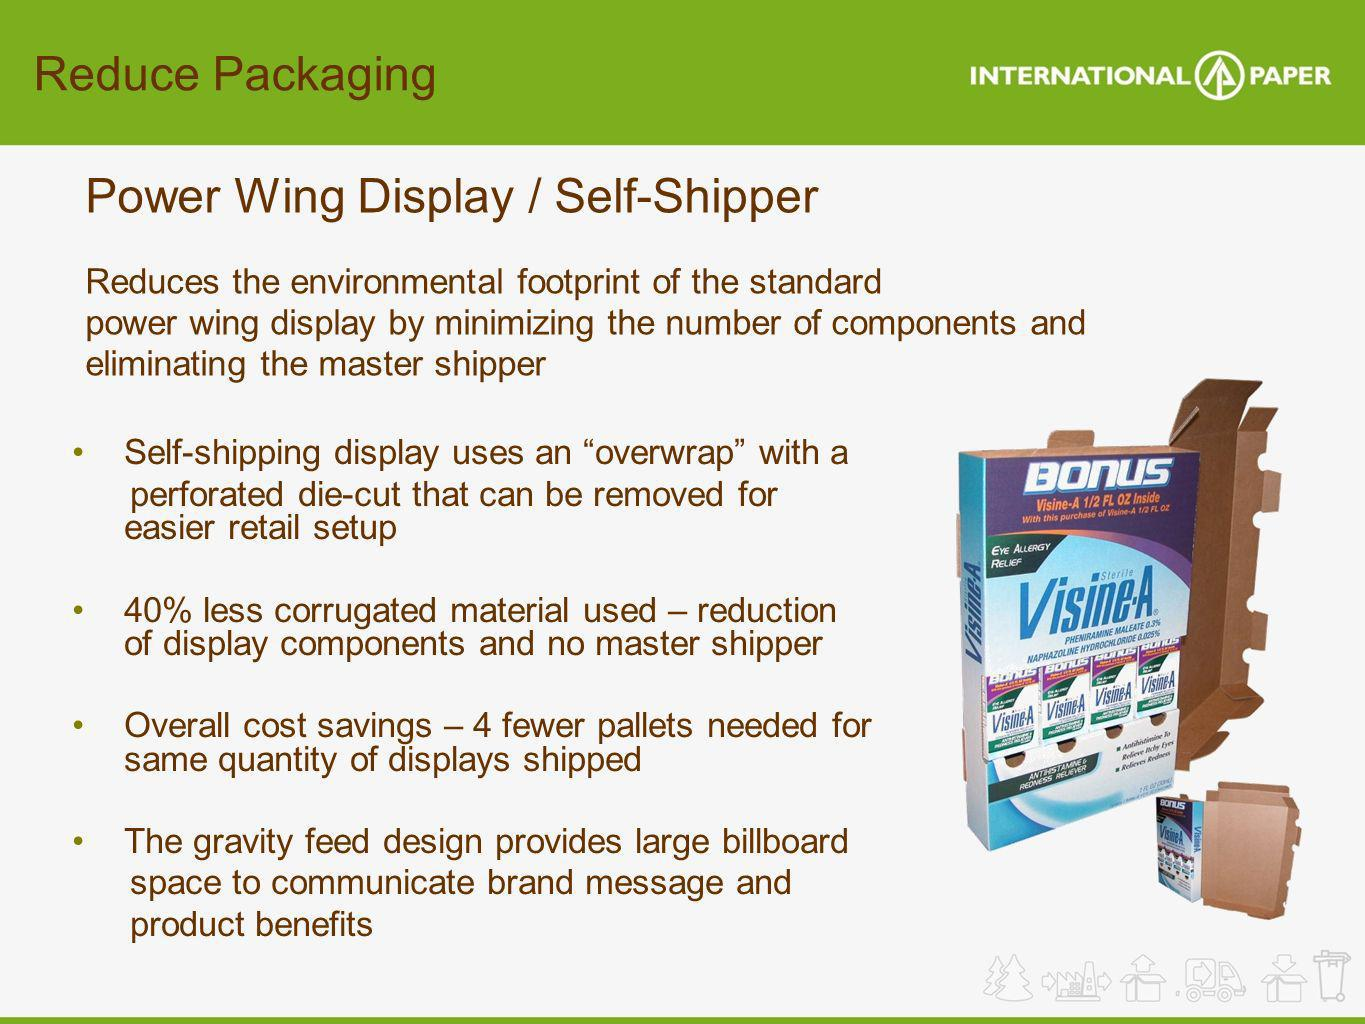 Power Wing Display / Self-Shipper